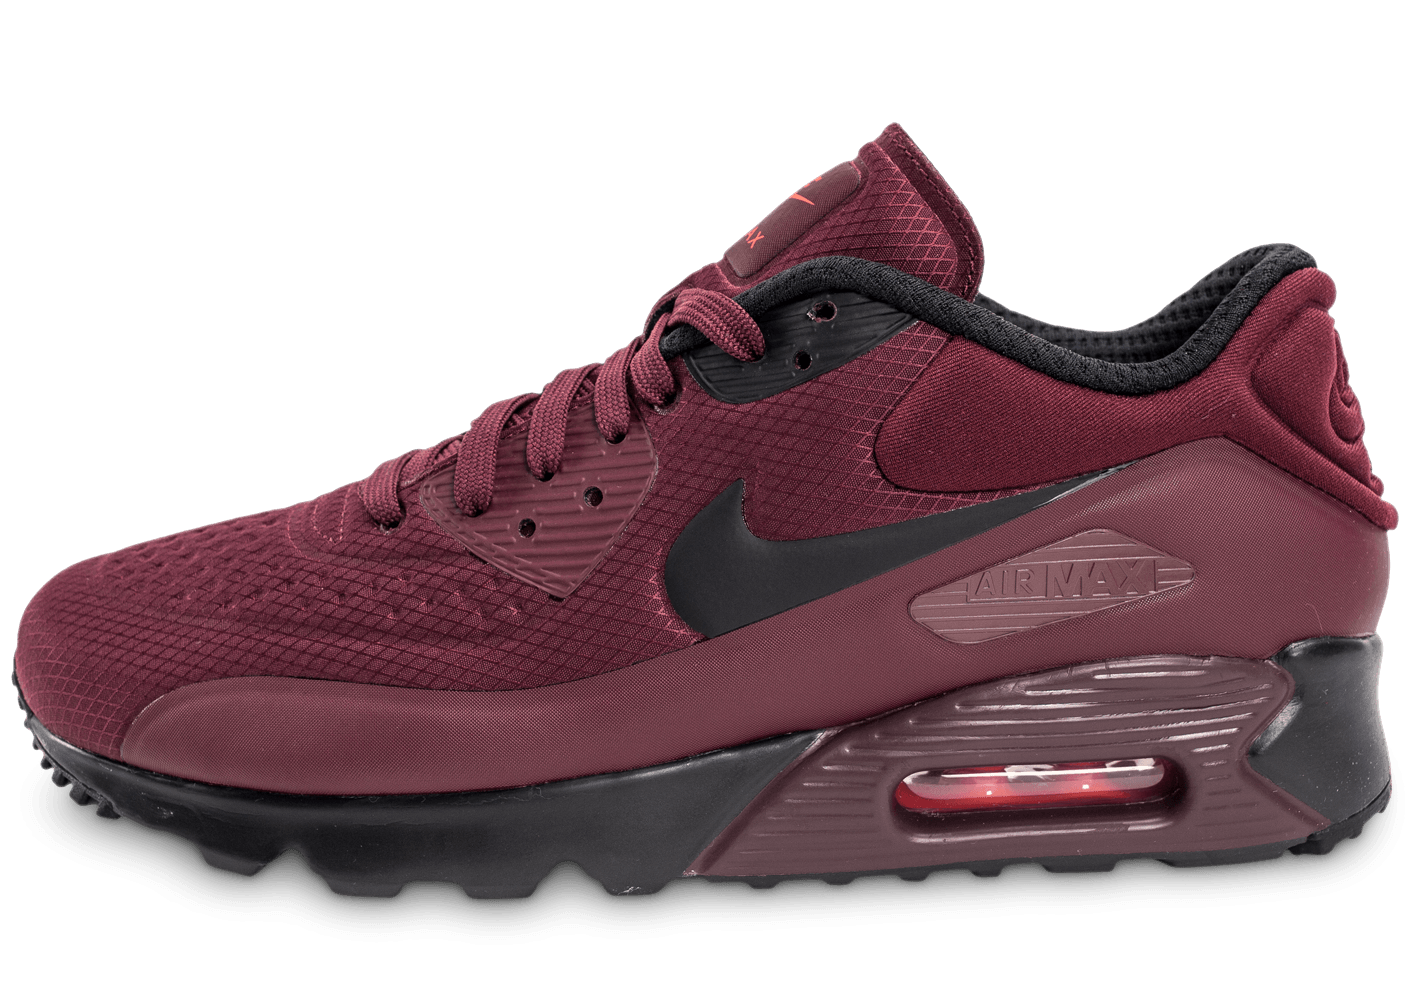 nike air max rouge bordeaux. Black Bedroom Furniture Sets. Home Design Ideas